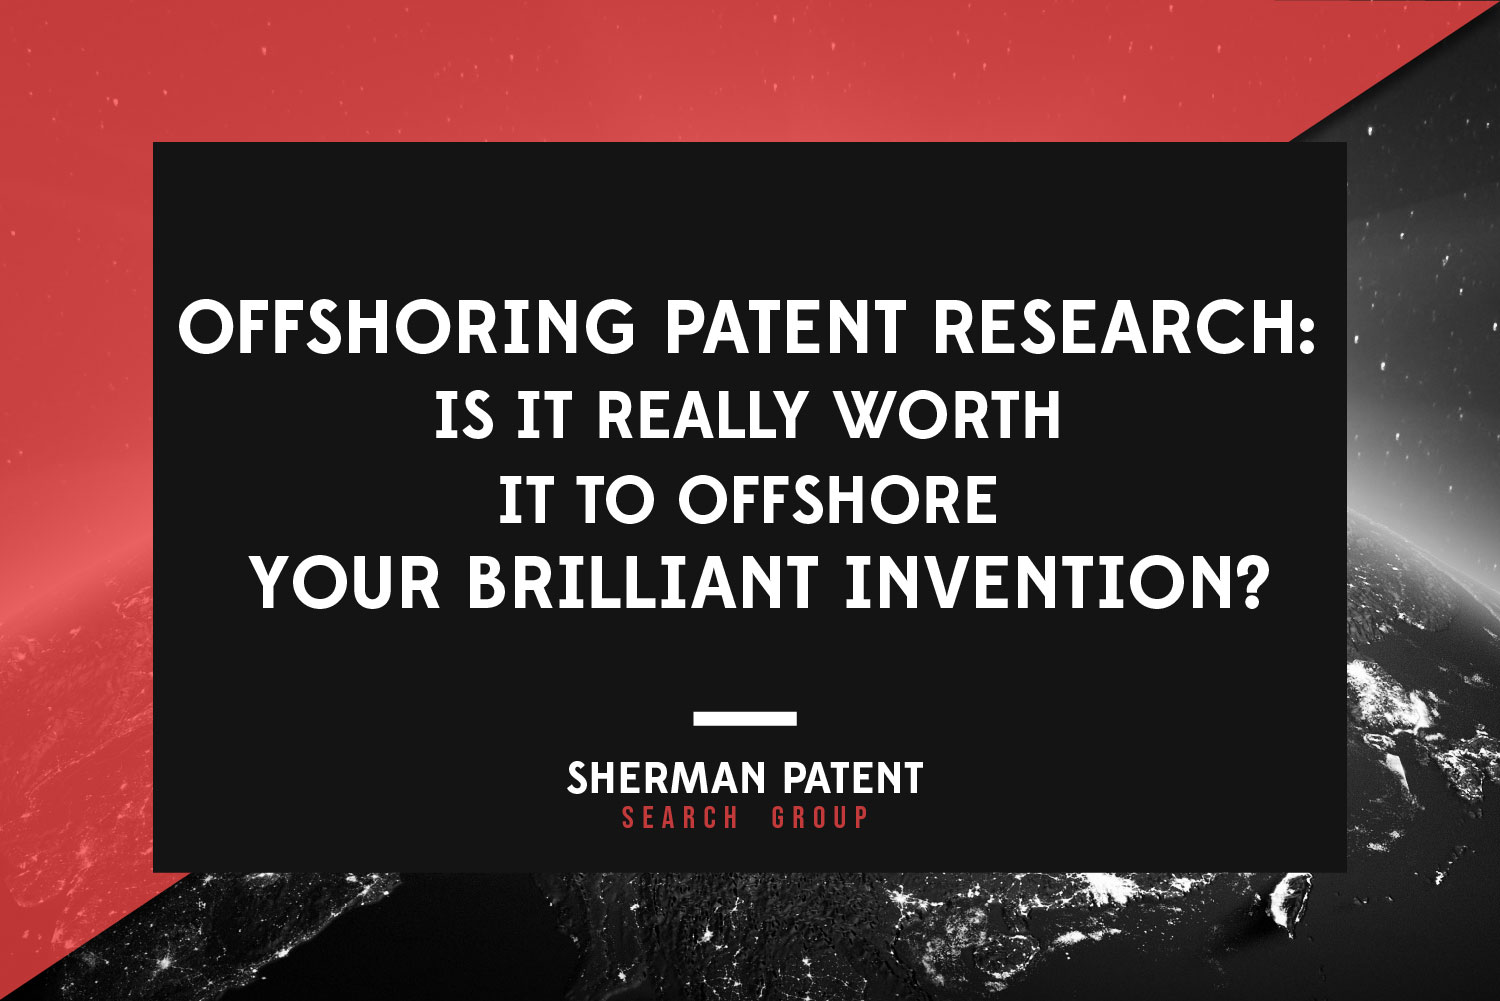 spsg_Is-it-Really-Worth-it-to-Offshore-Your-Brilliant-Invention_web.jpg